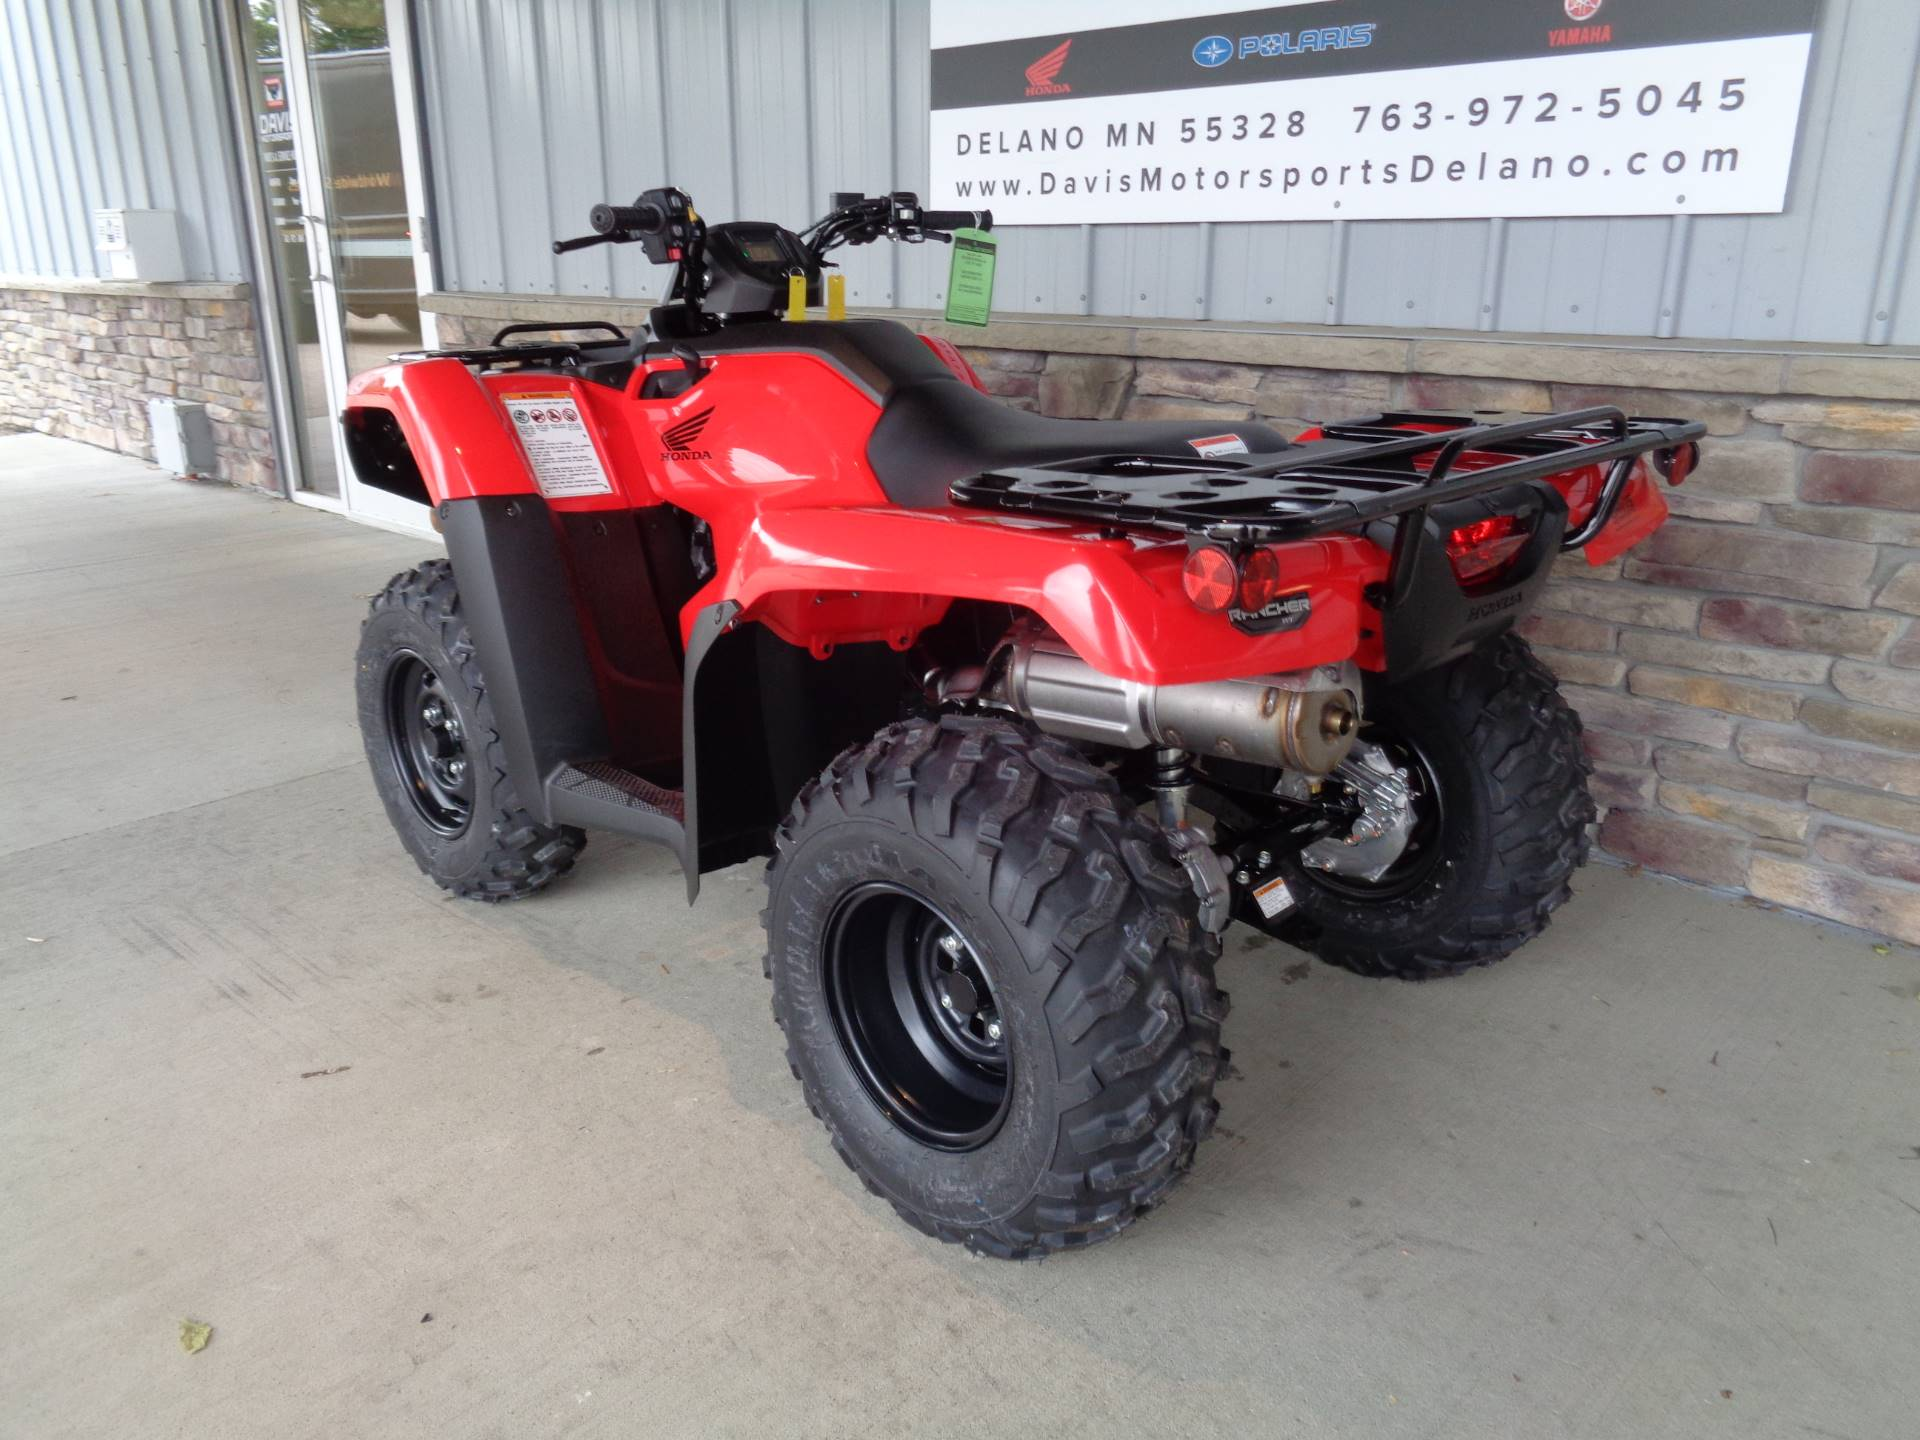 2020 Honda FourTrax Rancher 4x4 in Delano, Minnesota - Photo 7